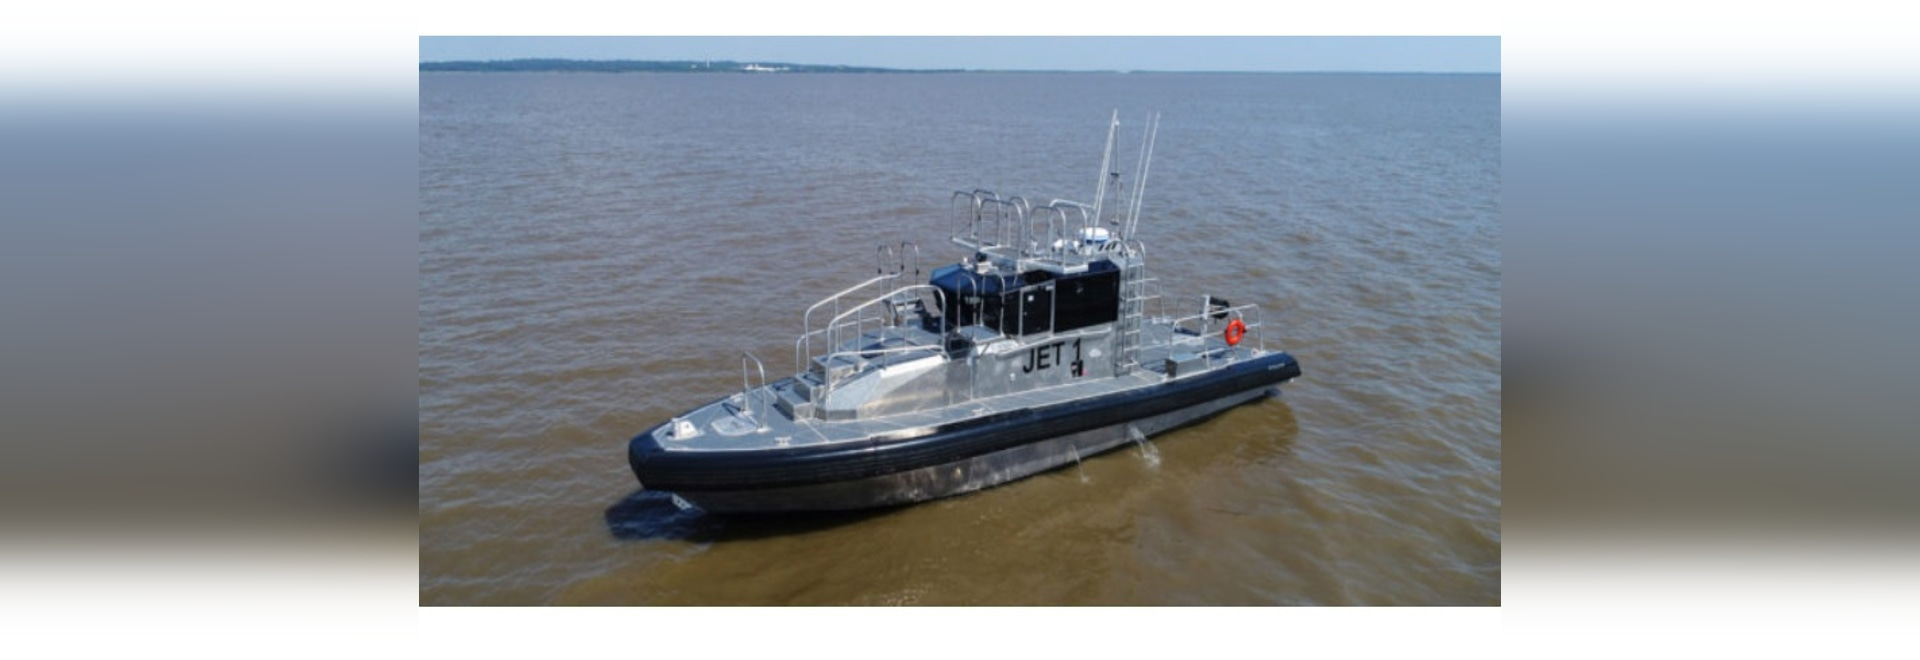 One of two new pilot boats that operate in the Mississippi River at New Orleans. Metal Shark photo